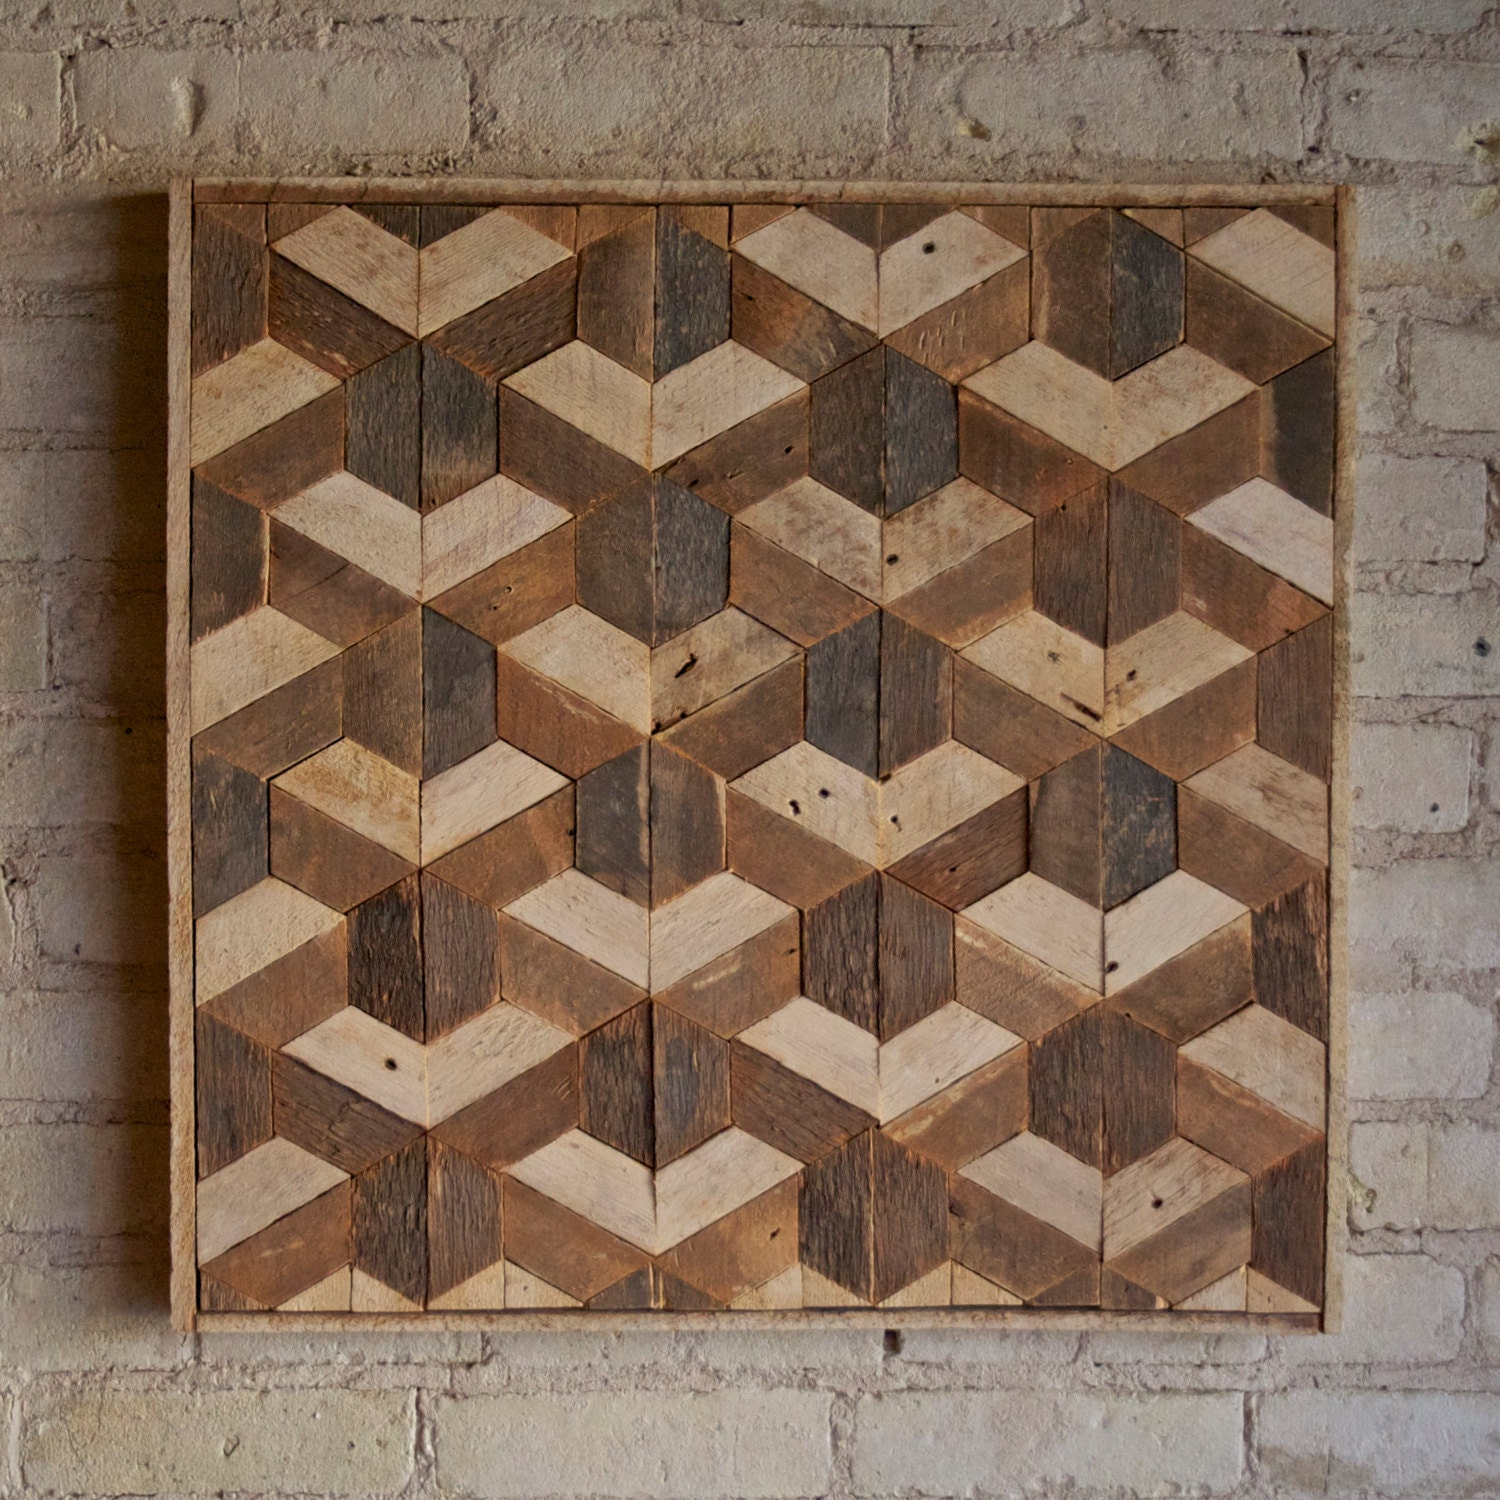 Wood Art Decor Awesome Reclaimed Wood Wall Art Decor Lath Pattern Geometric Hexagon Inspiration Design